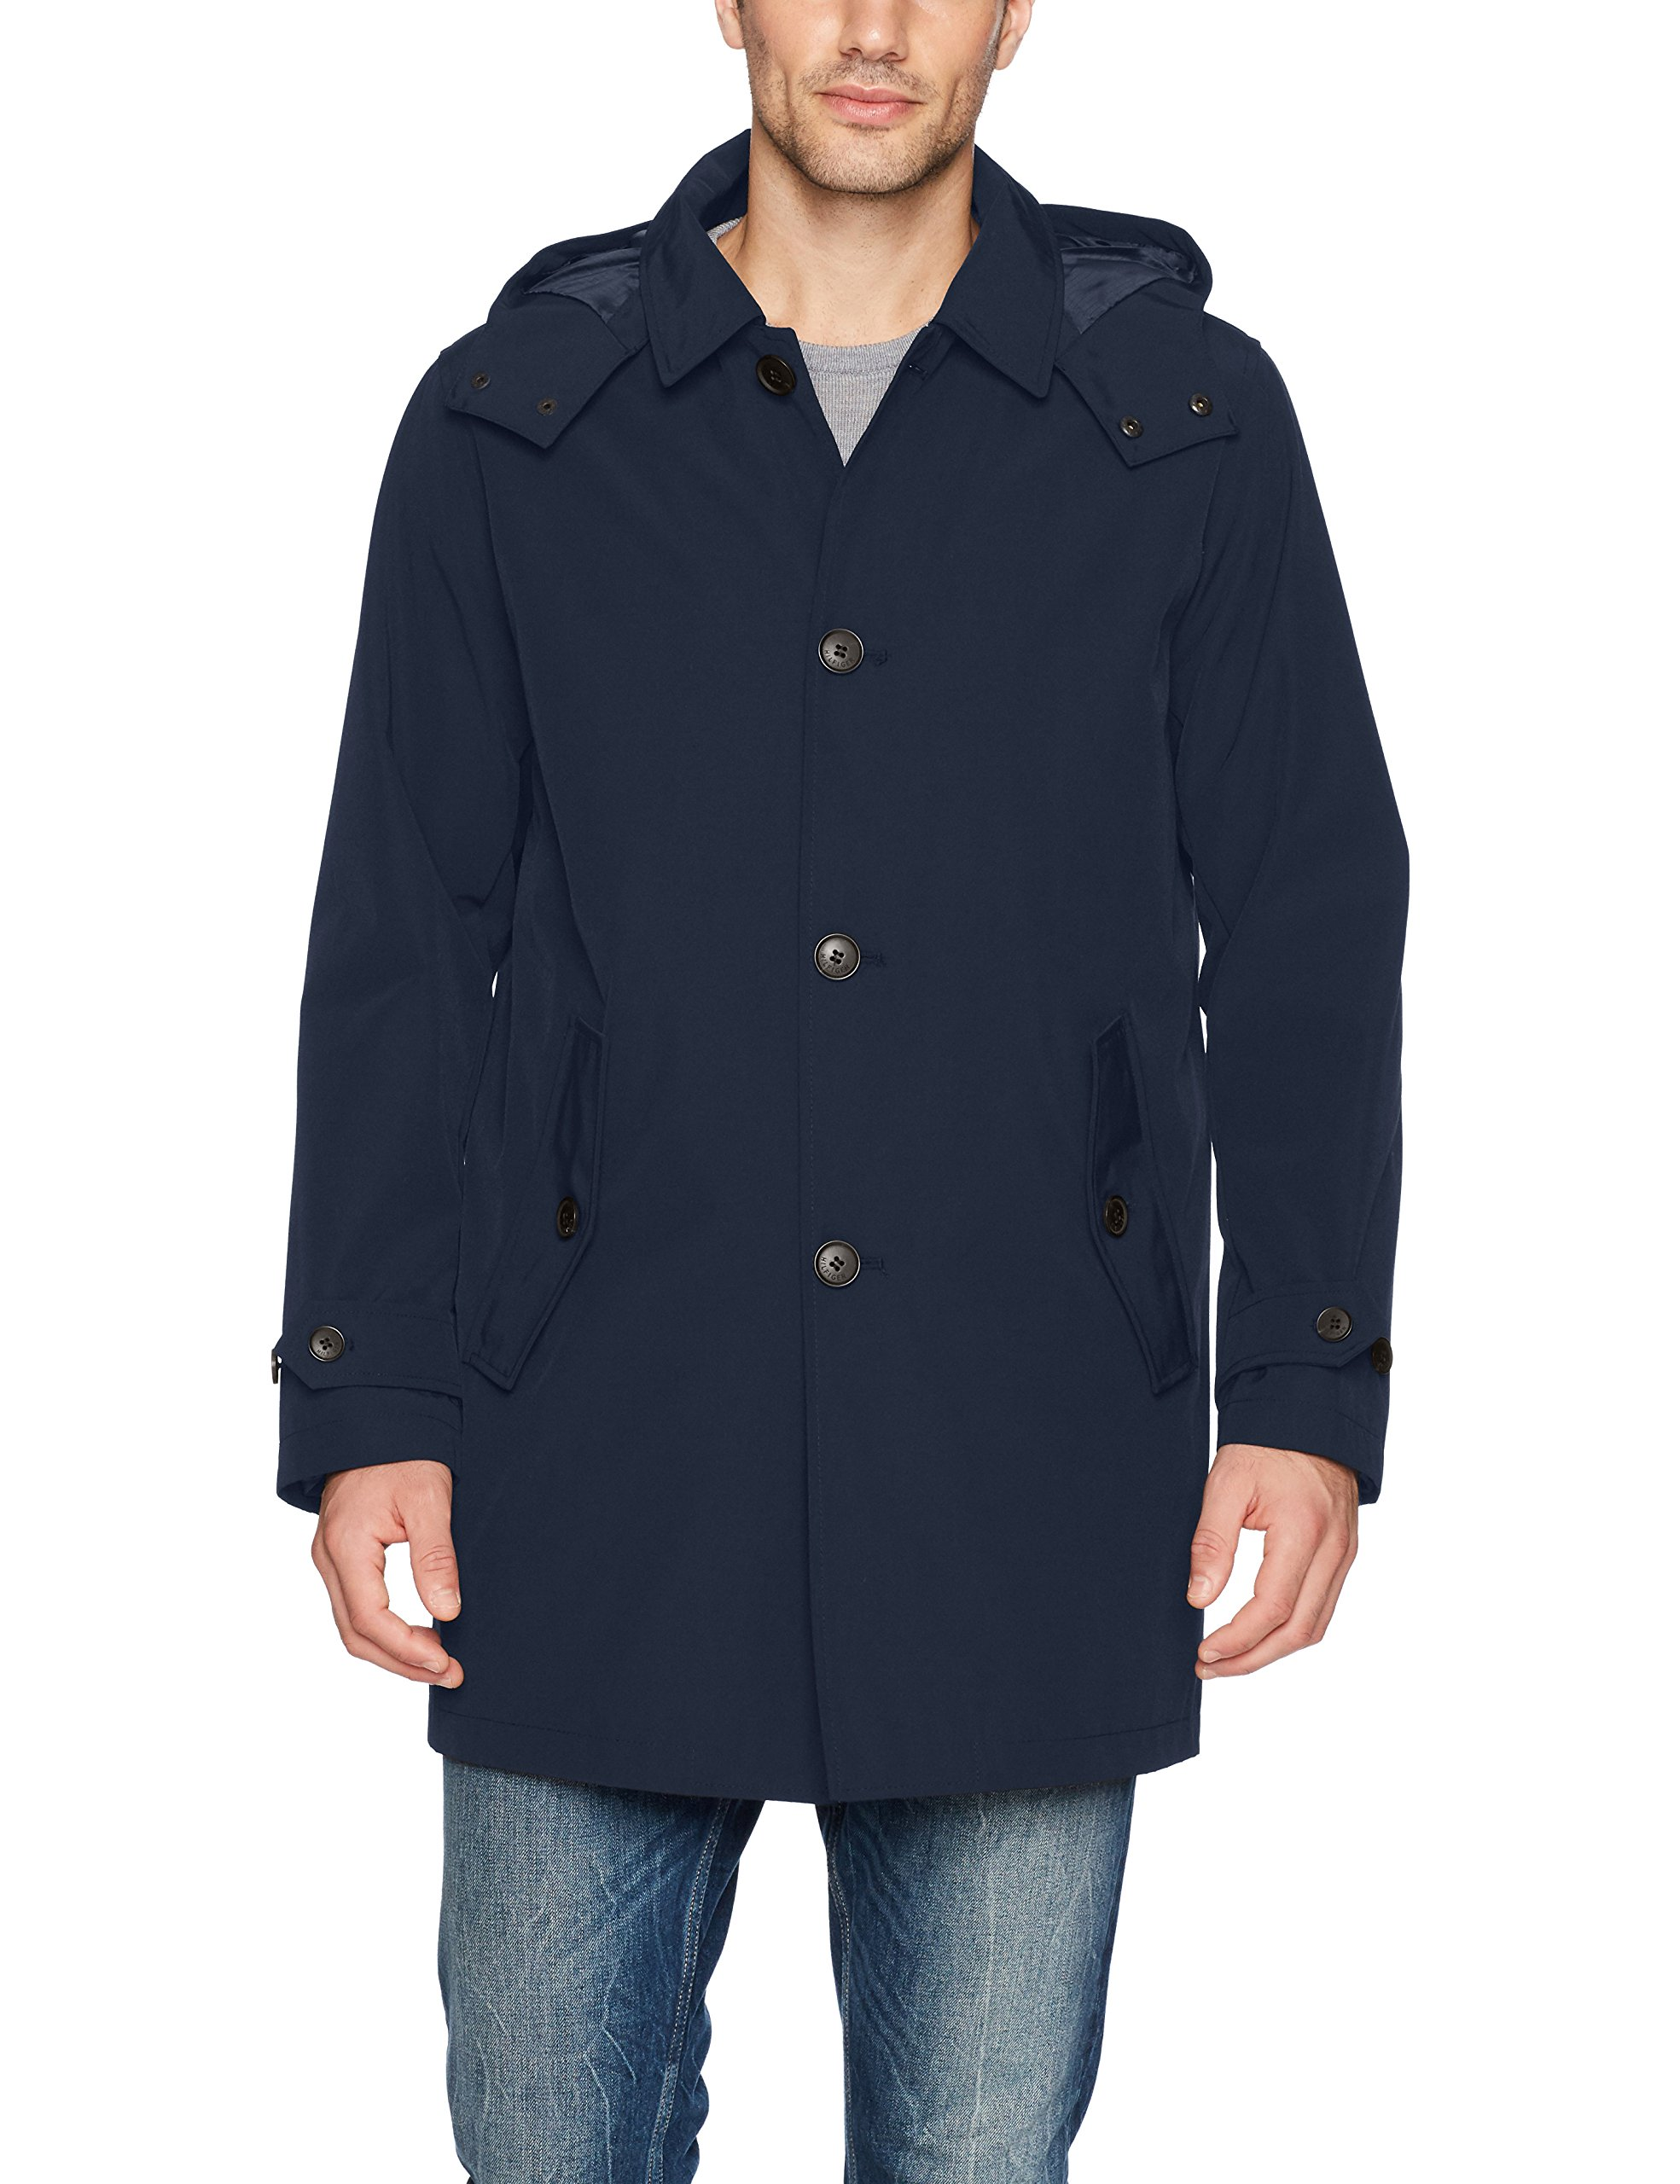 Tommy Hilfiger Men's Hooded Rain Trench Coat with Removable Quilted Liner, Navy, XX-Large by Tommy Hilfiger